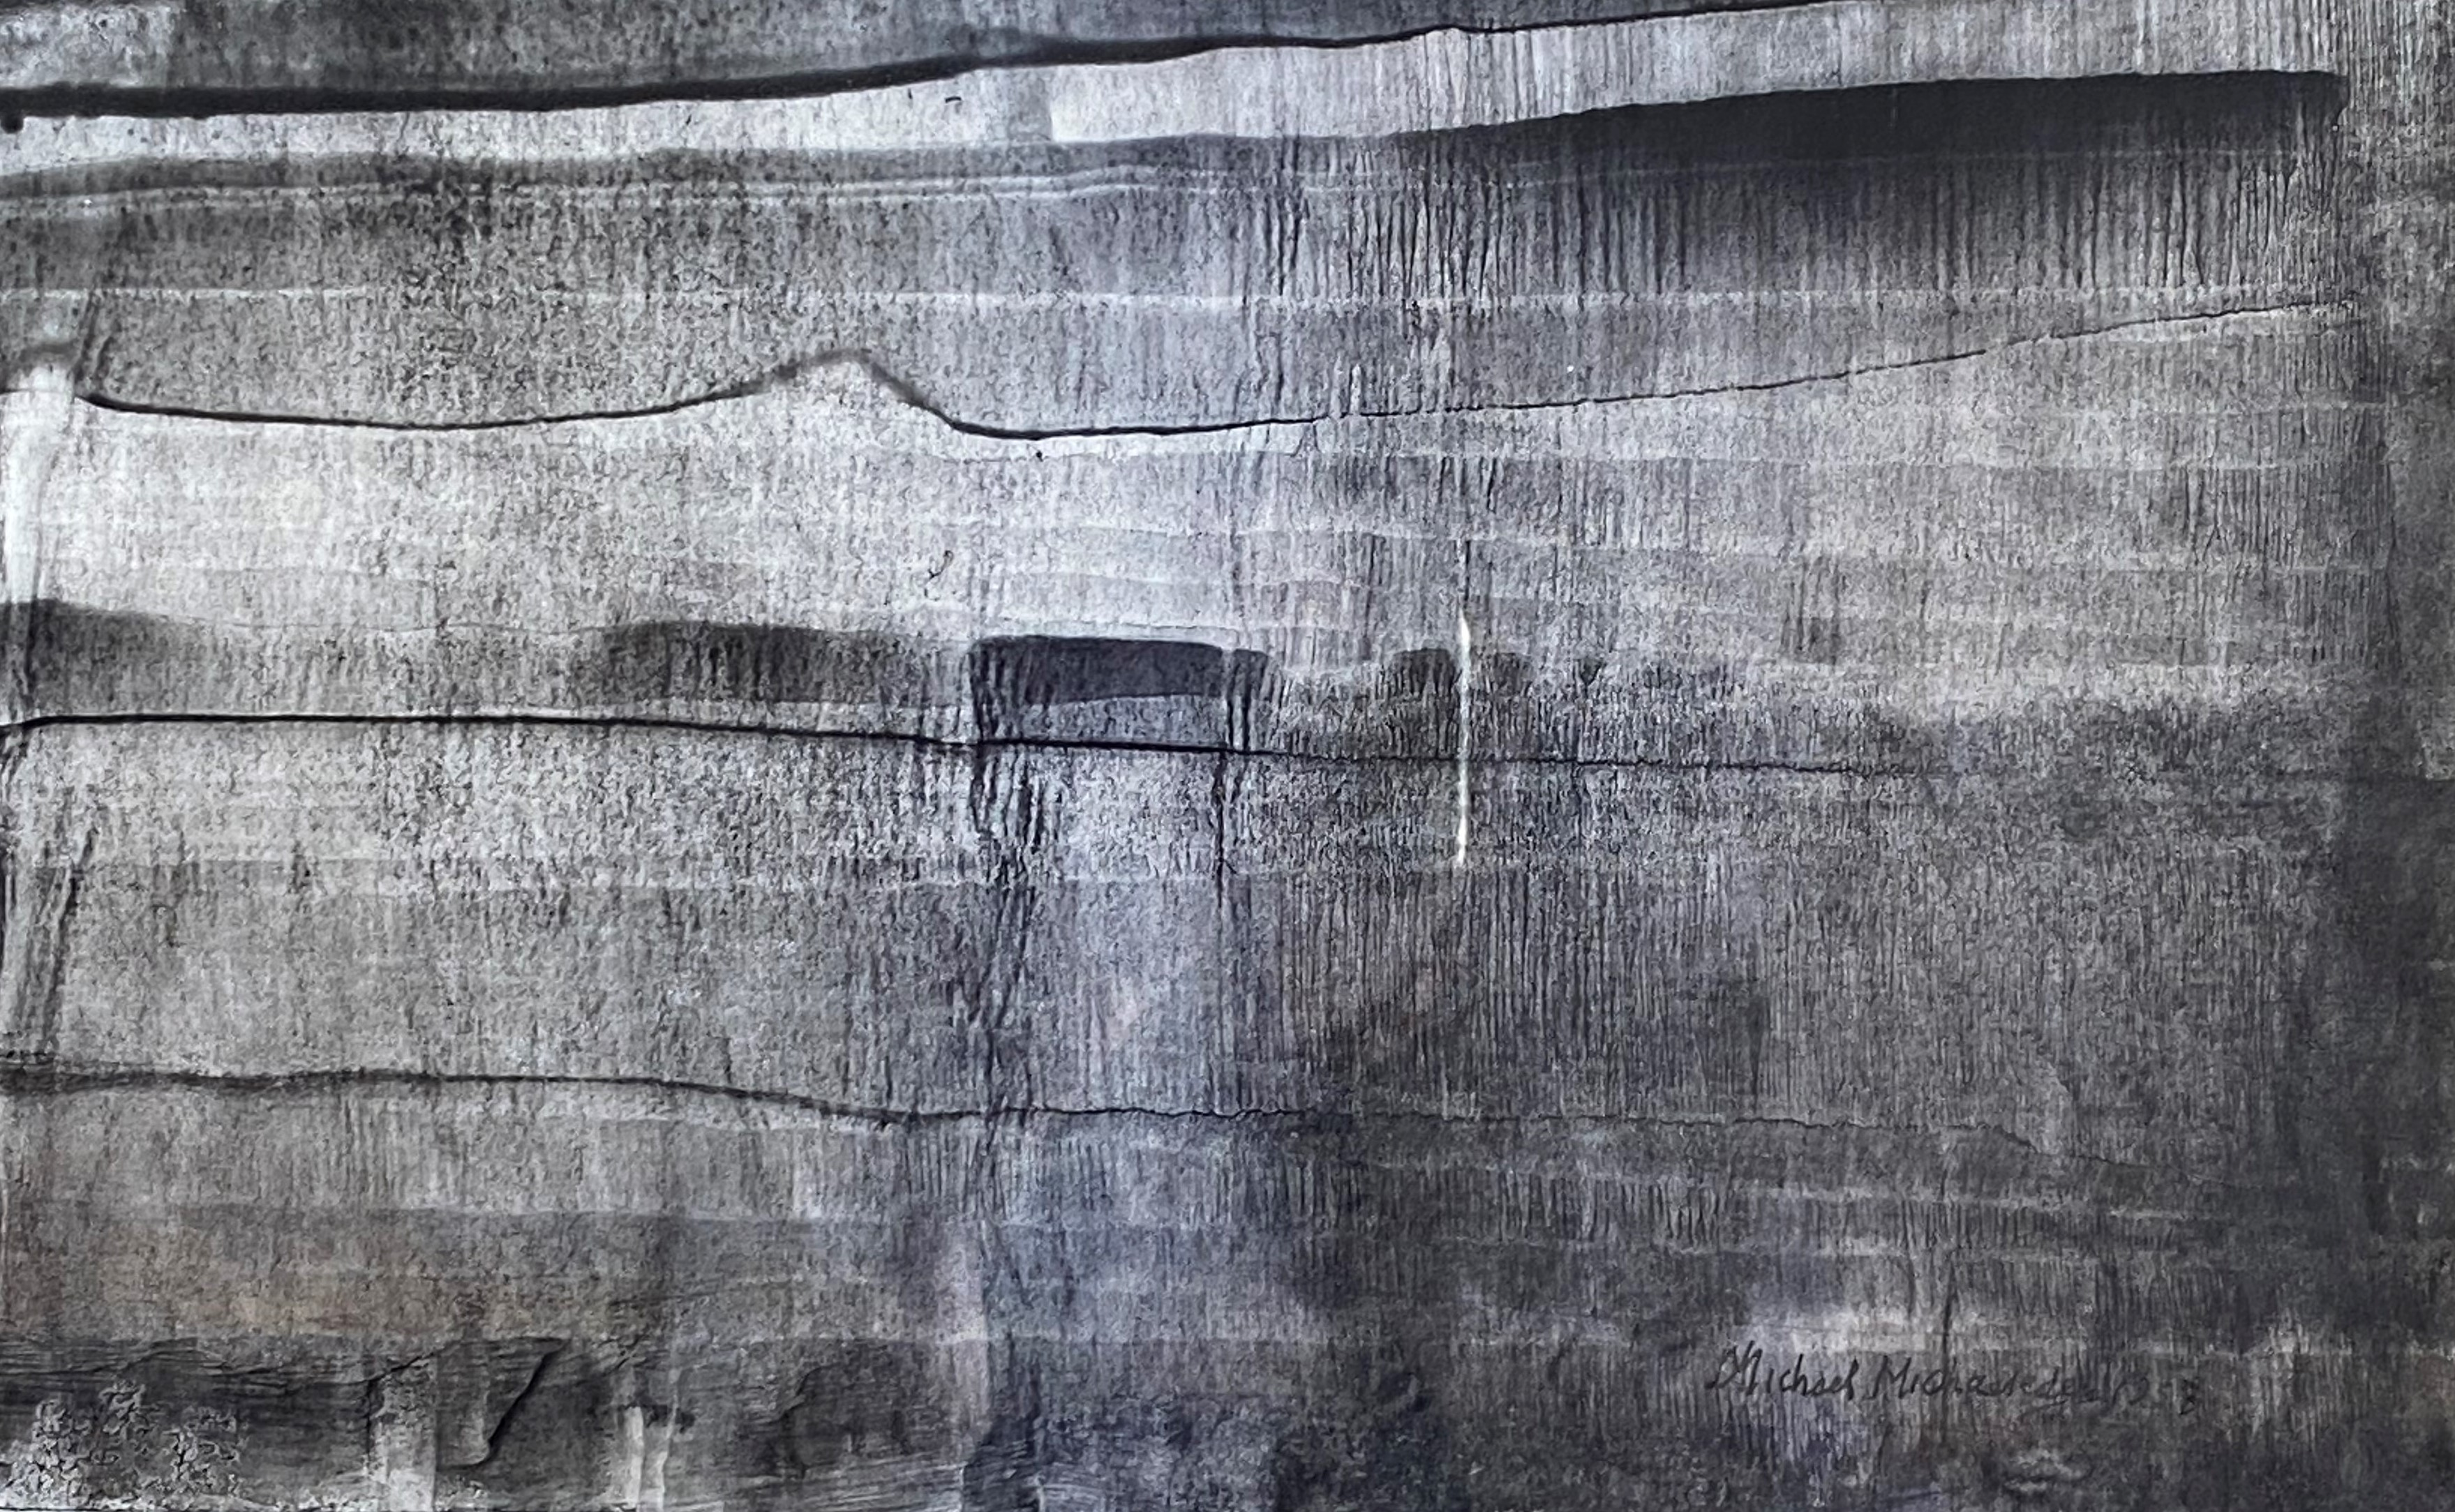 Michael Michaeledes (Cypriot/British, 1922 - 2015) (AR), untitled 1958, ink on paper, 45 x 77 cm. - Image 2 of 2